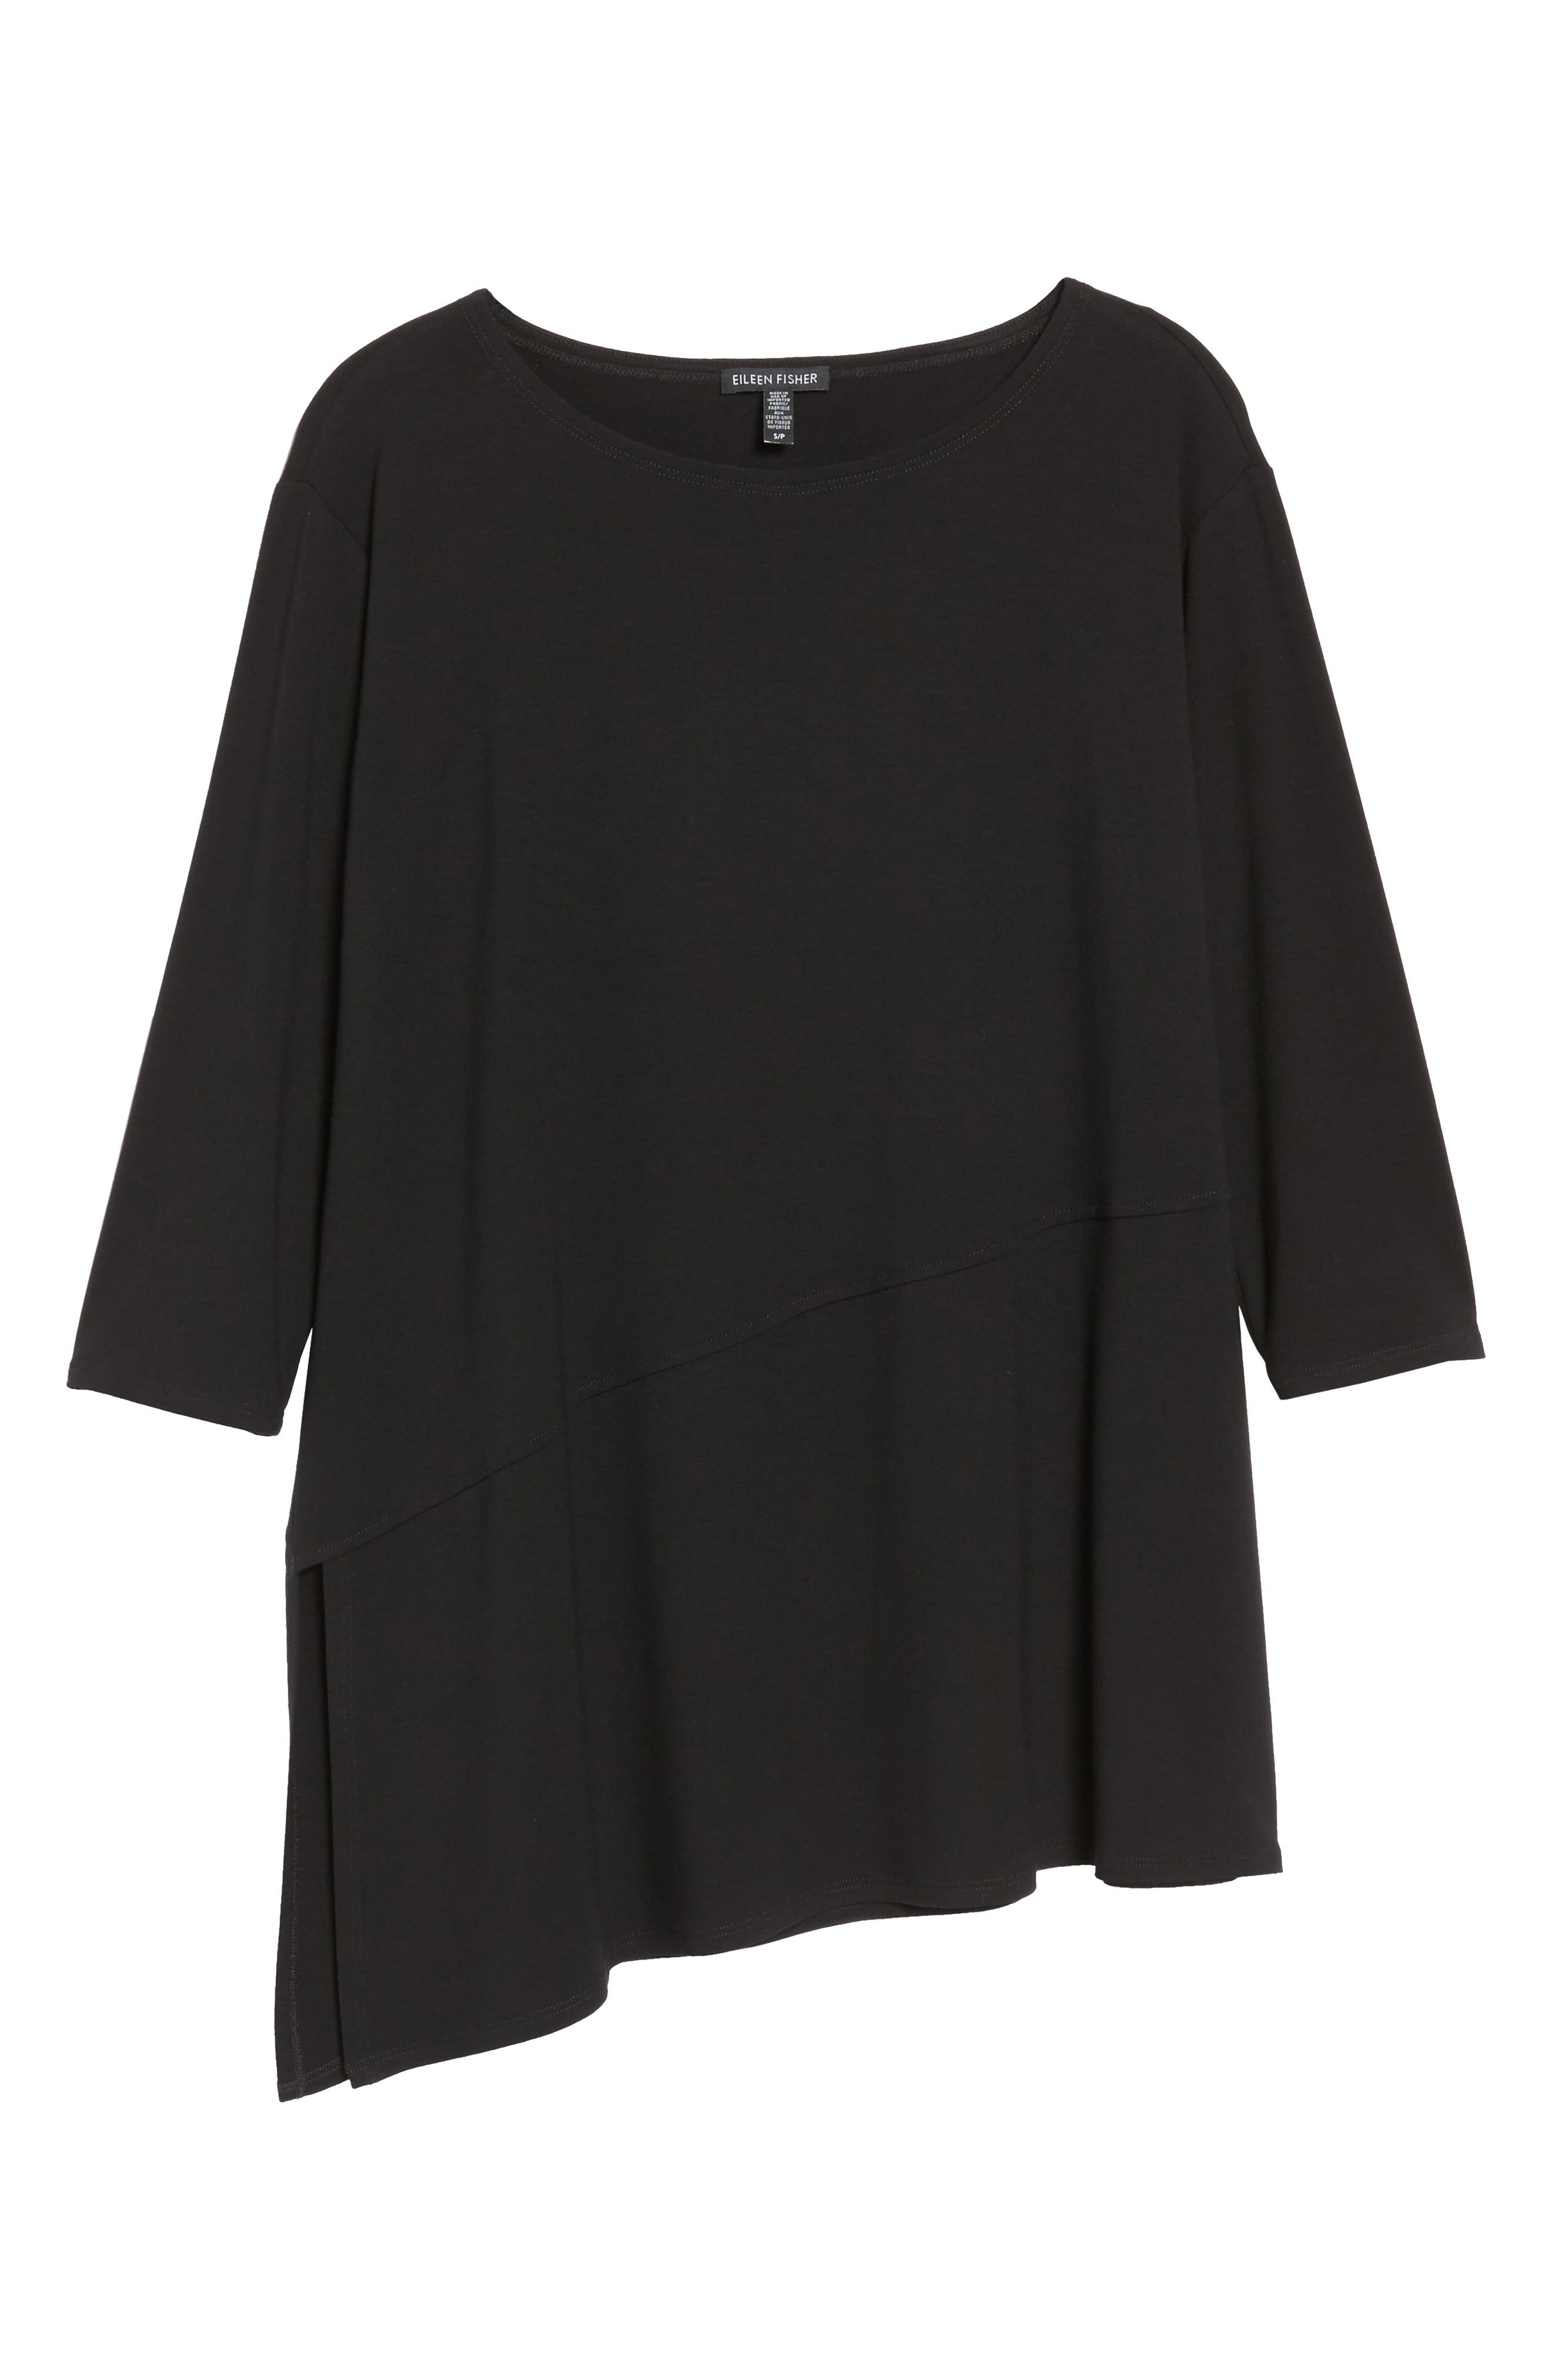 EILEEN FISHER,                             Asymmetrical Jersey Top,                             Alternate thumbnail 6, color,                             001